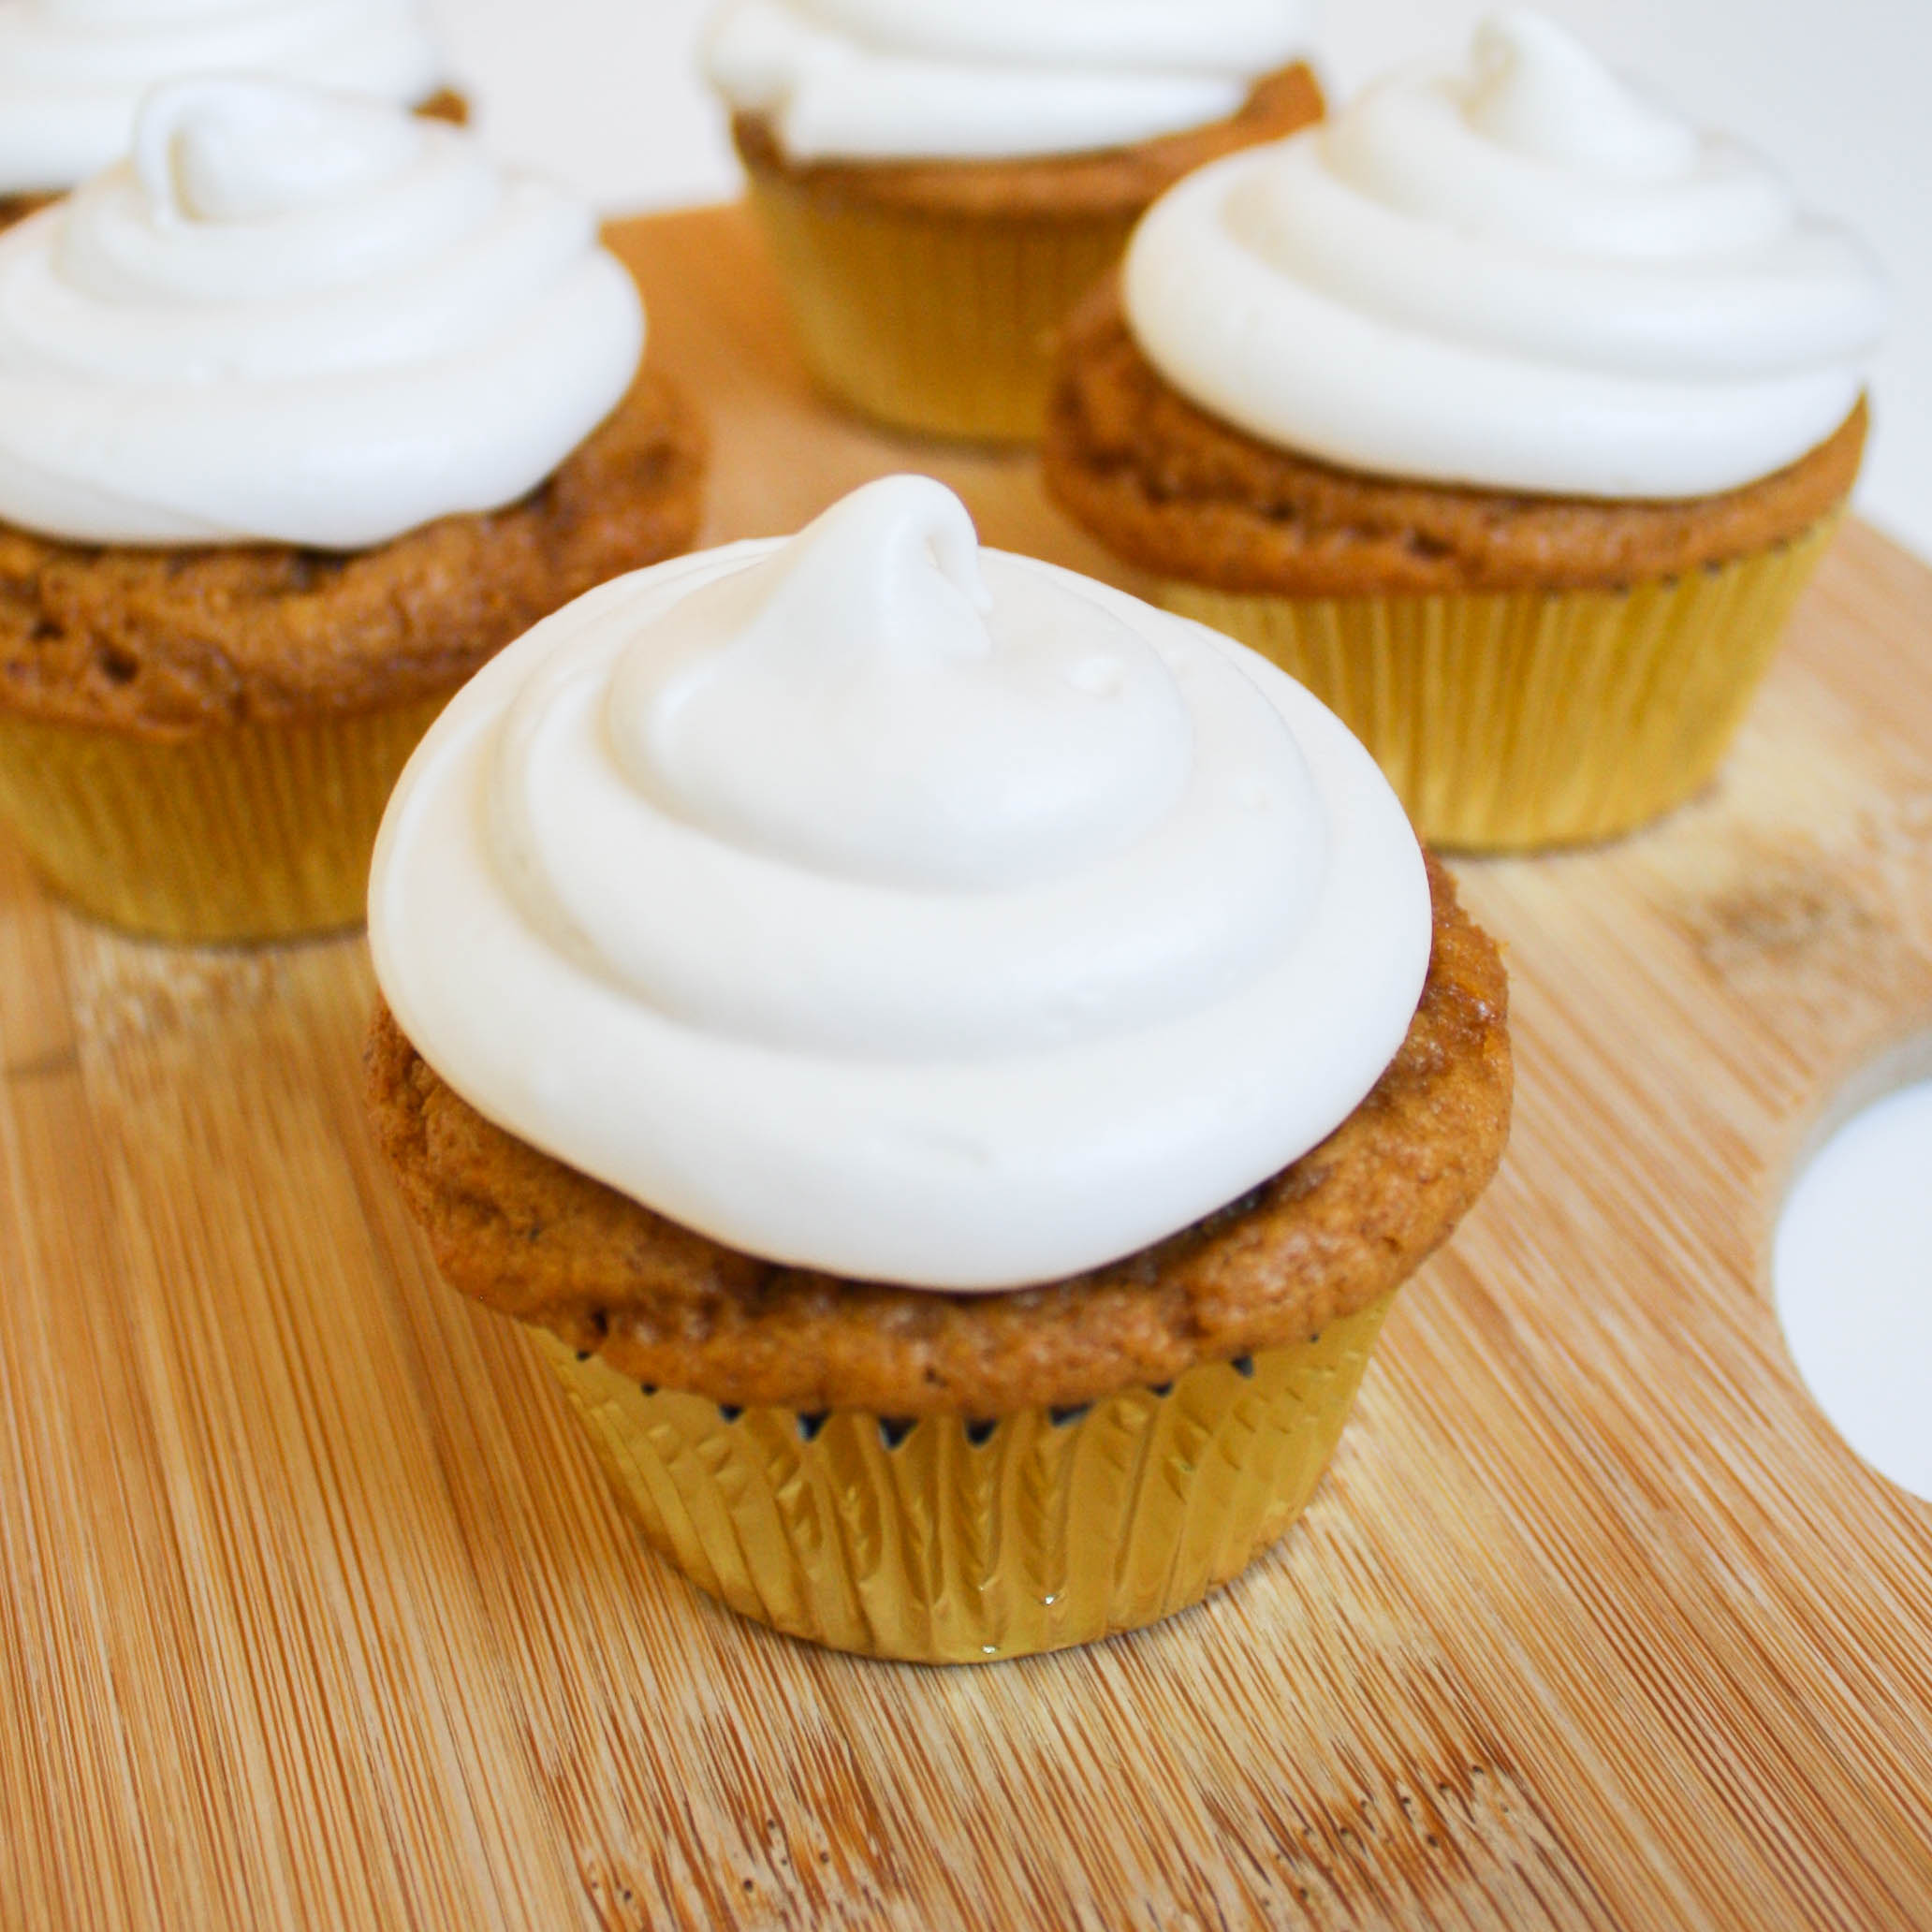 FALL for these Pumpkin Spice Cupcakes with Vegan Cream Cheese Icing!